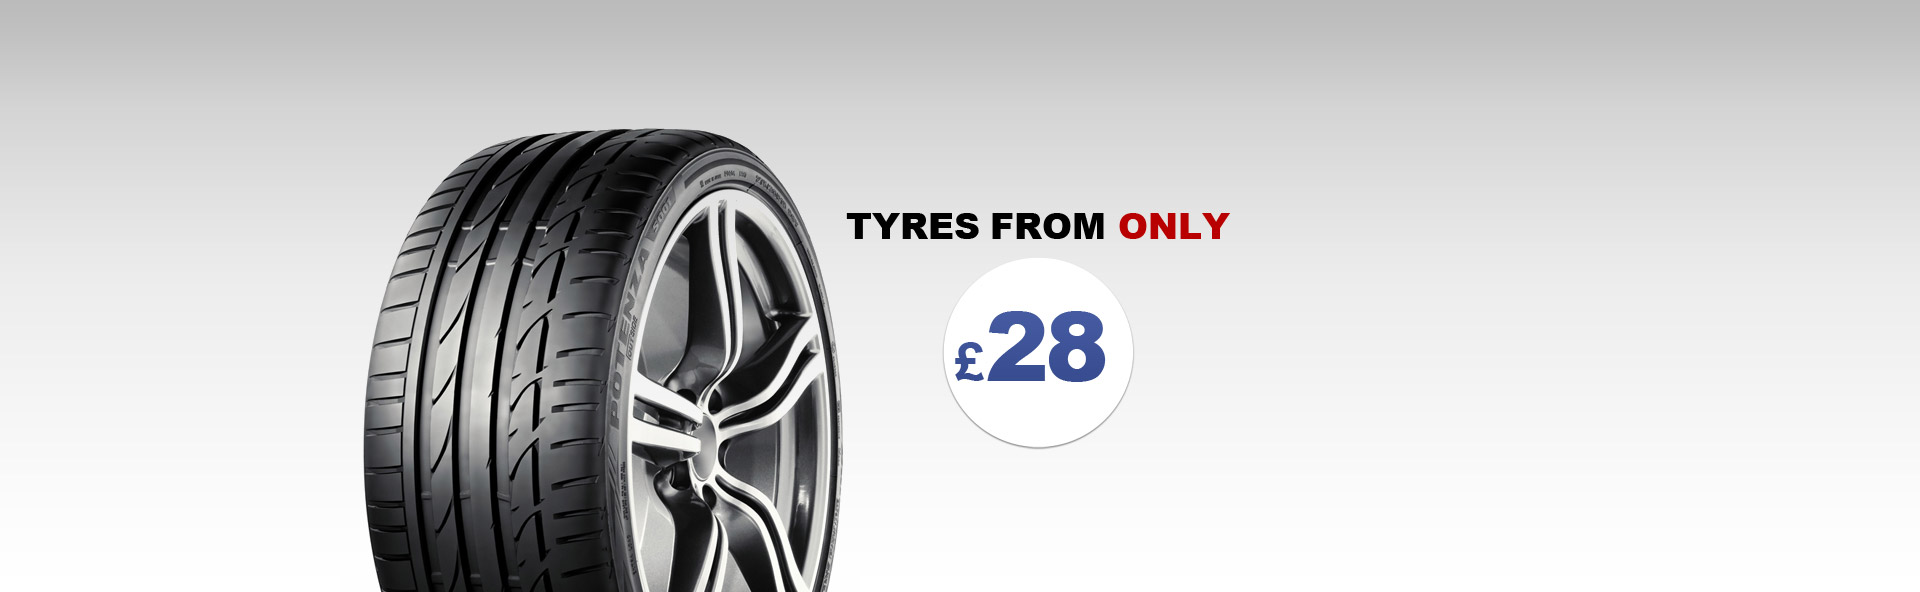 Image displaying tyres from only £28 in Edinburgh